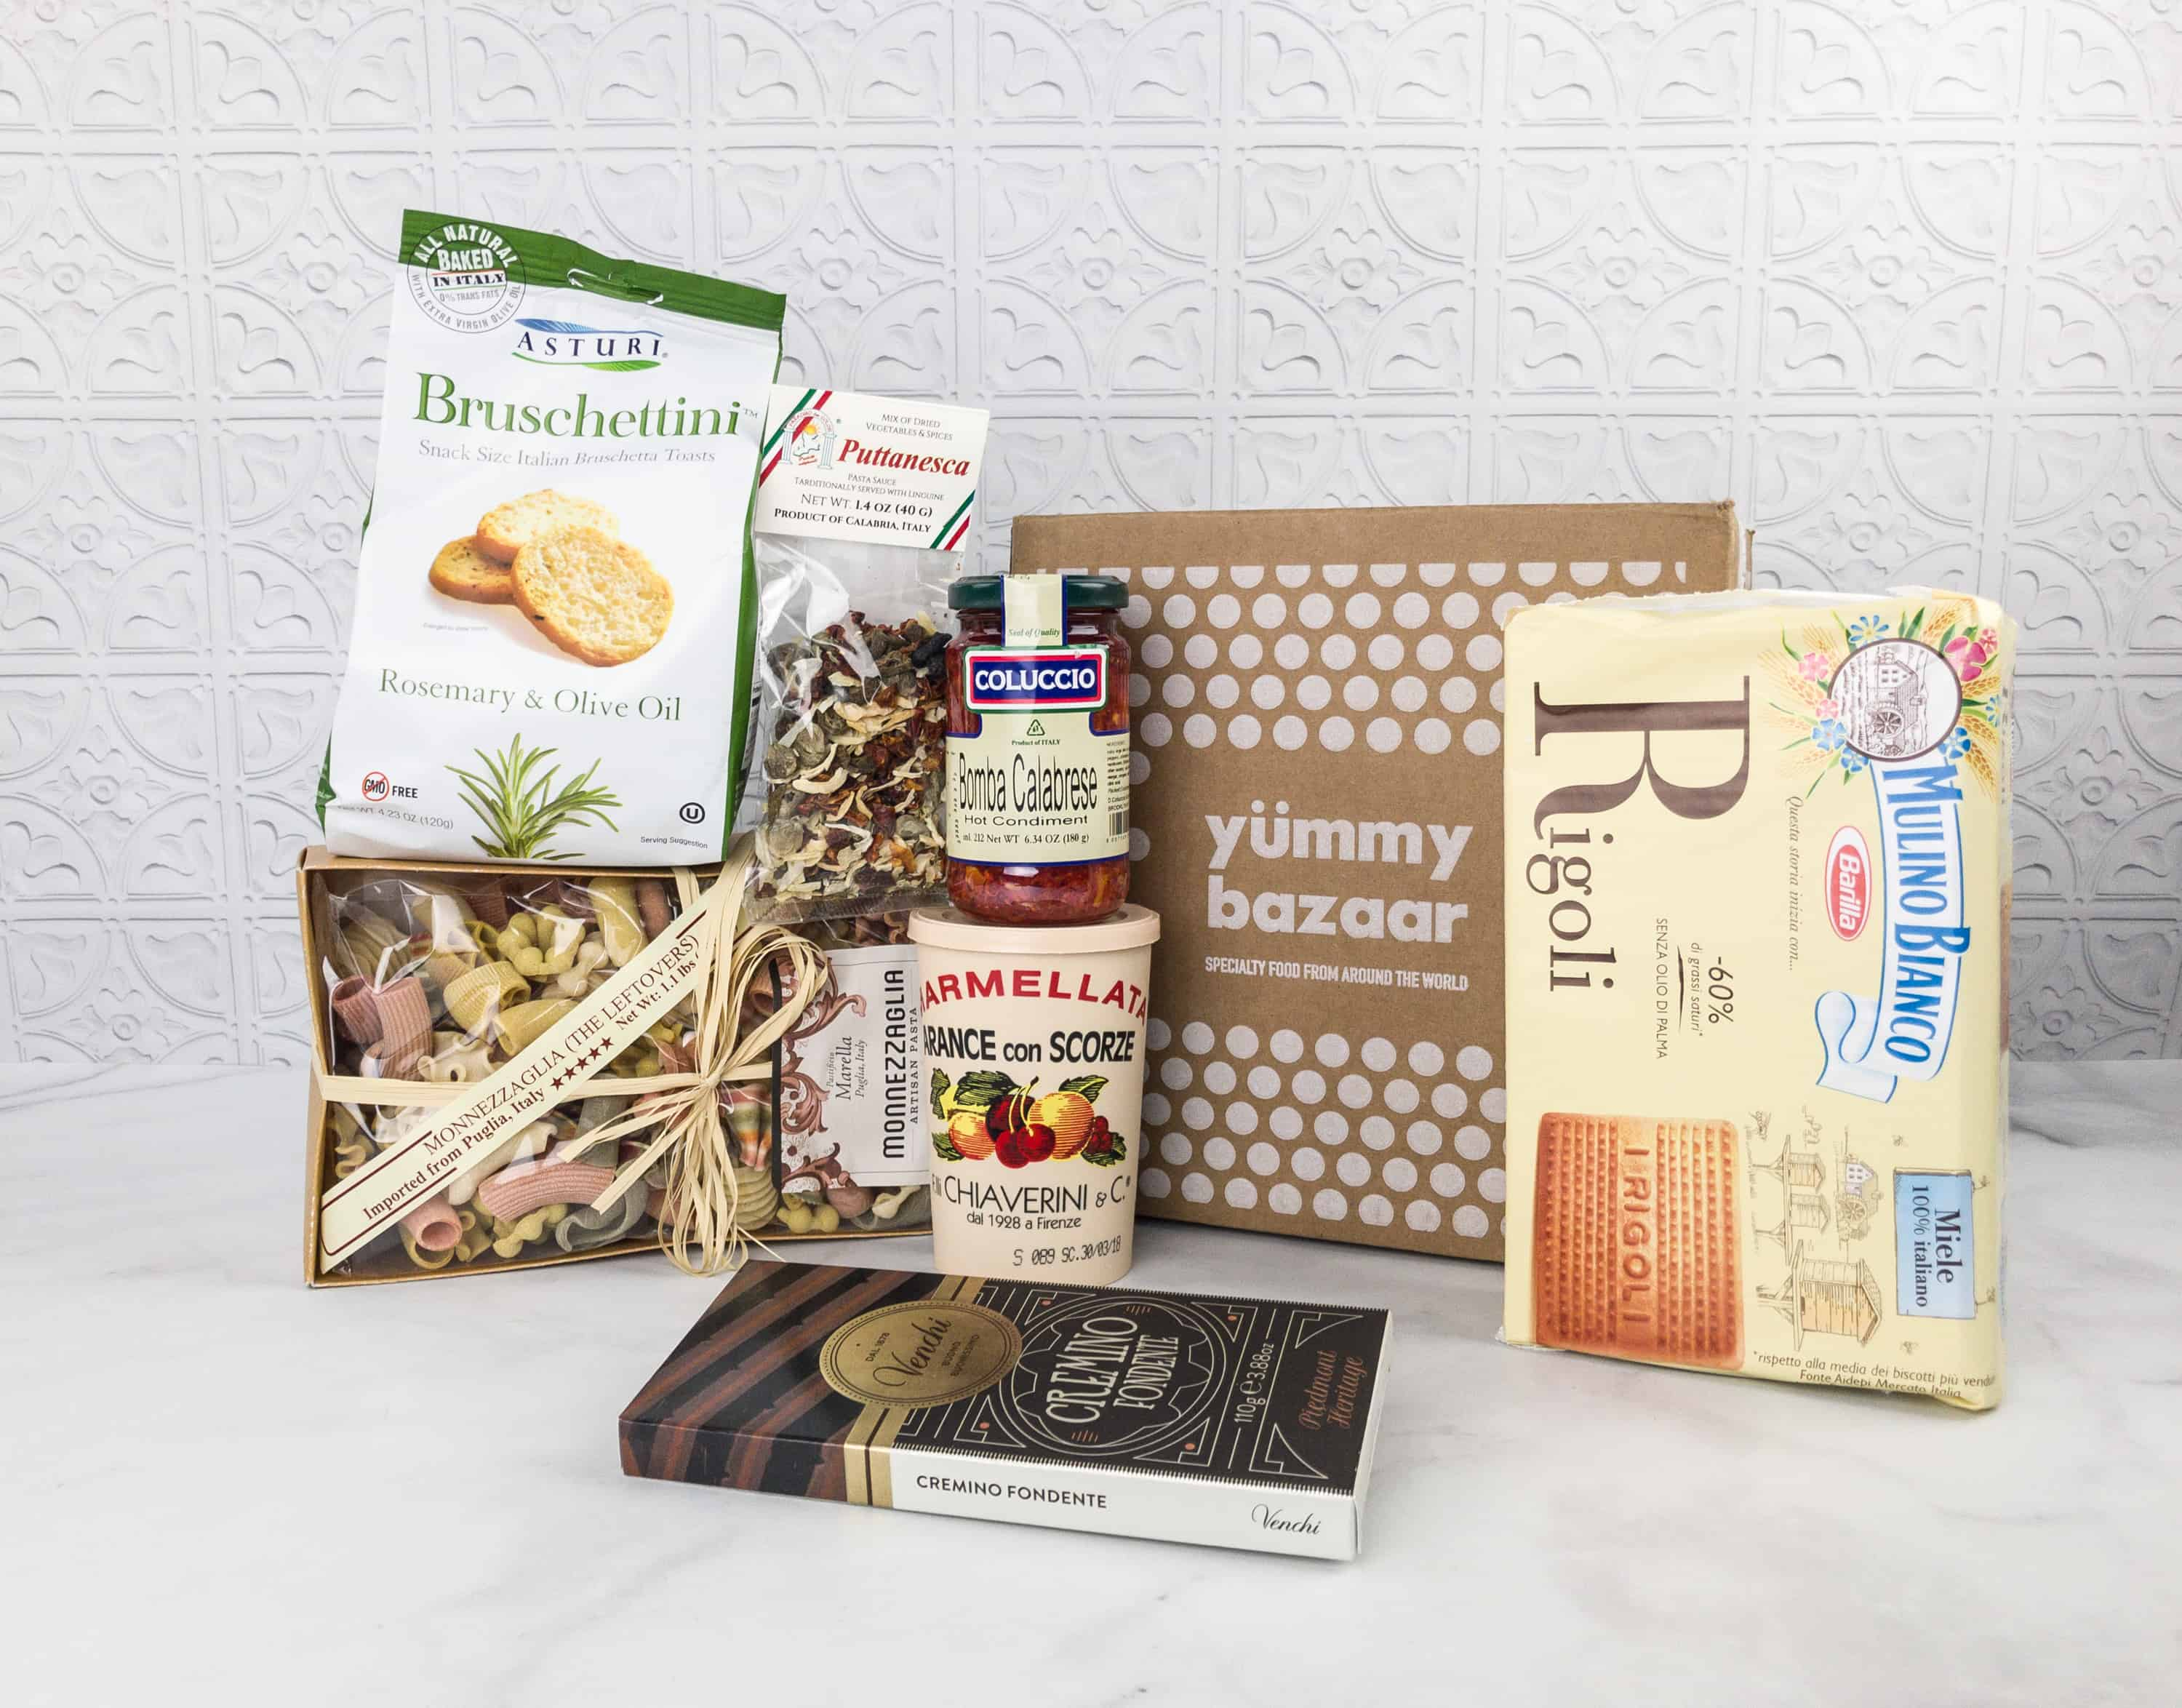 February 2018 Yummy Bazaar Full Experience Subscription Box Review